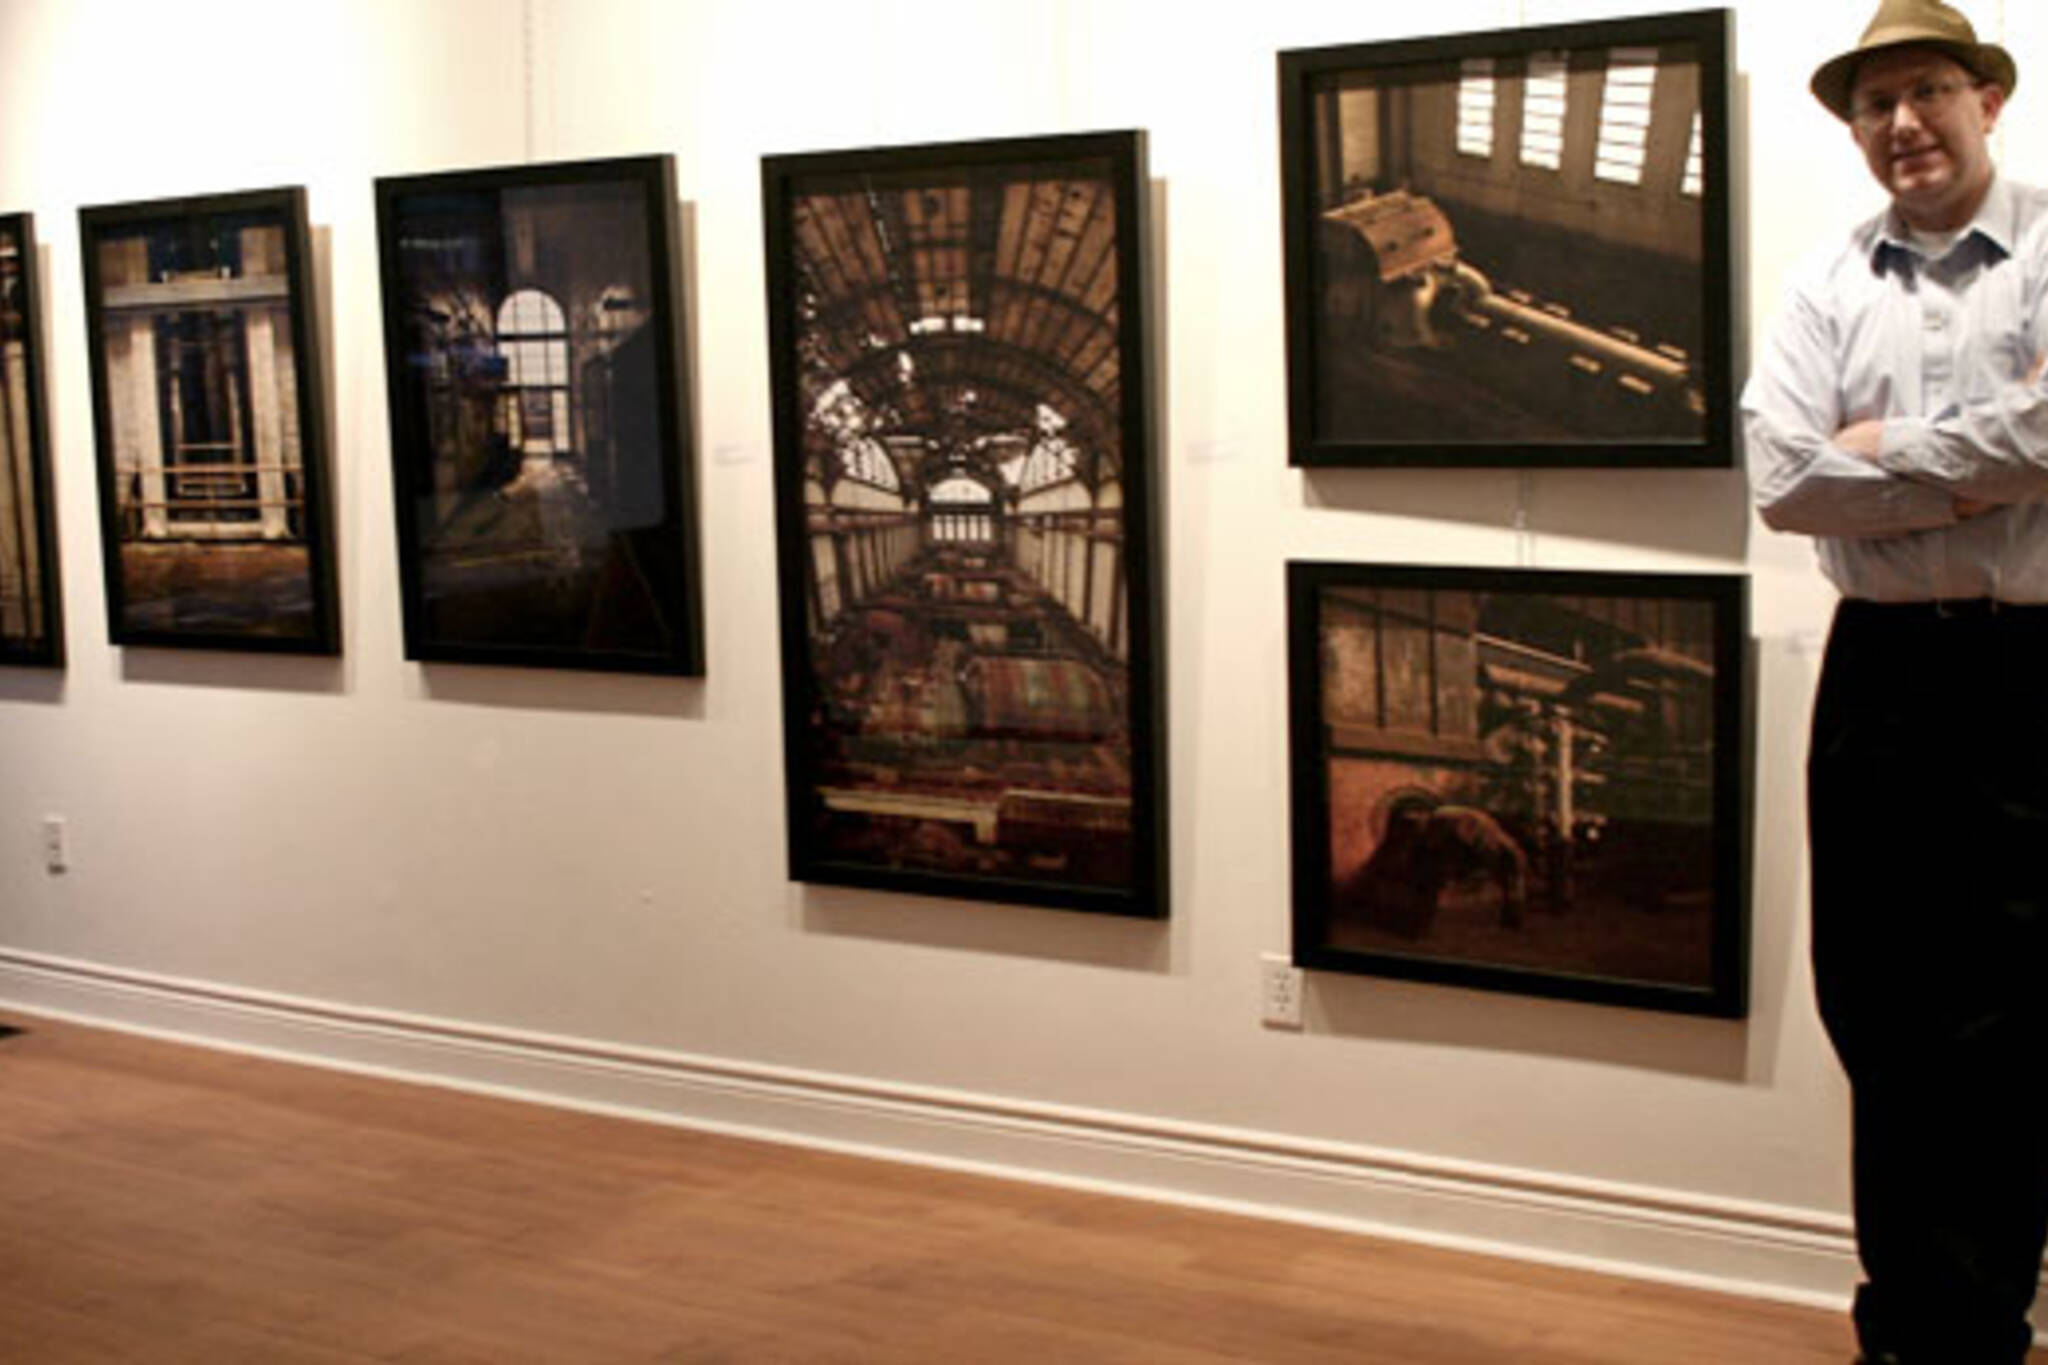 Sean Galbraith with his photographs, taken in Philadelphia